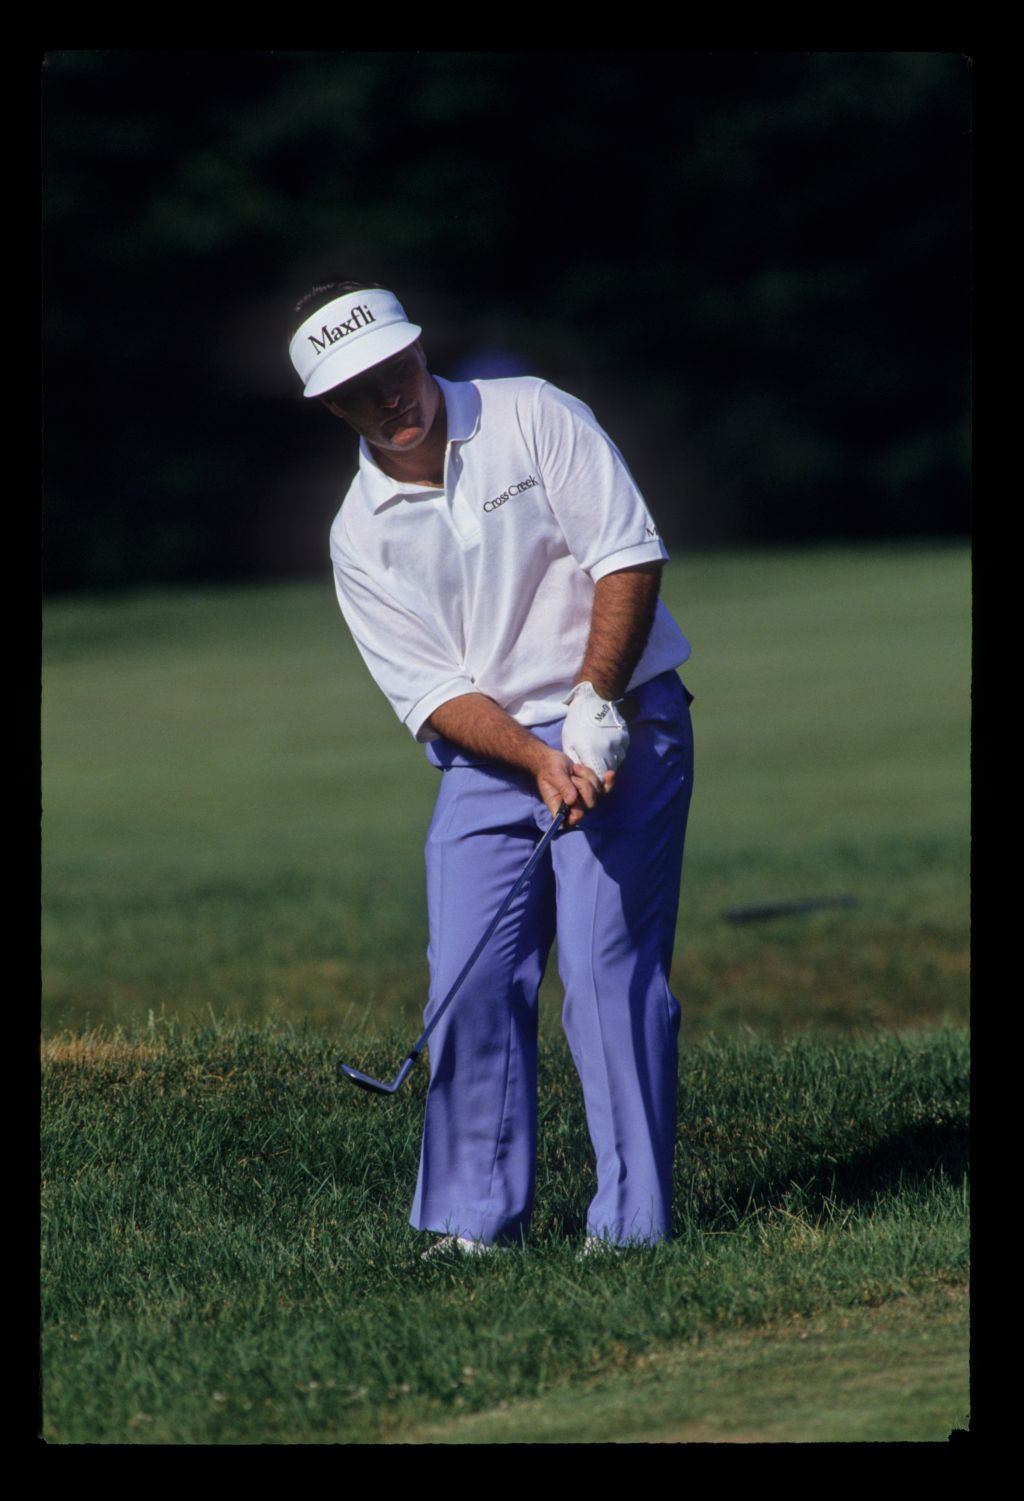 Craig Parry chipping from the greenside rough on his way to third place during the 1993 US Open